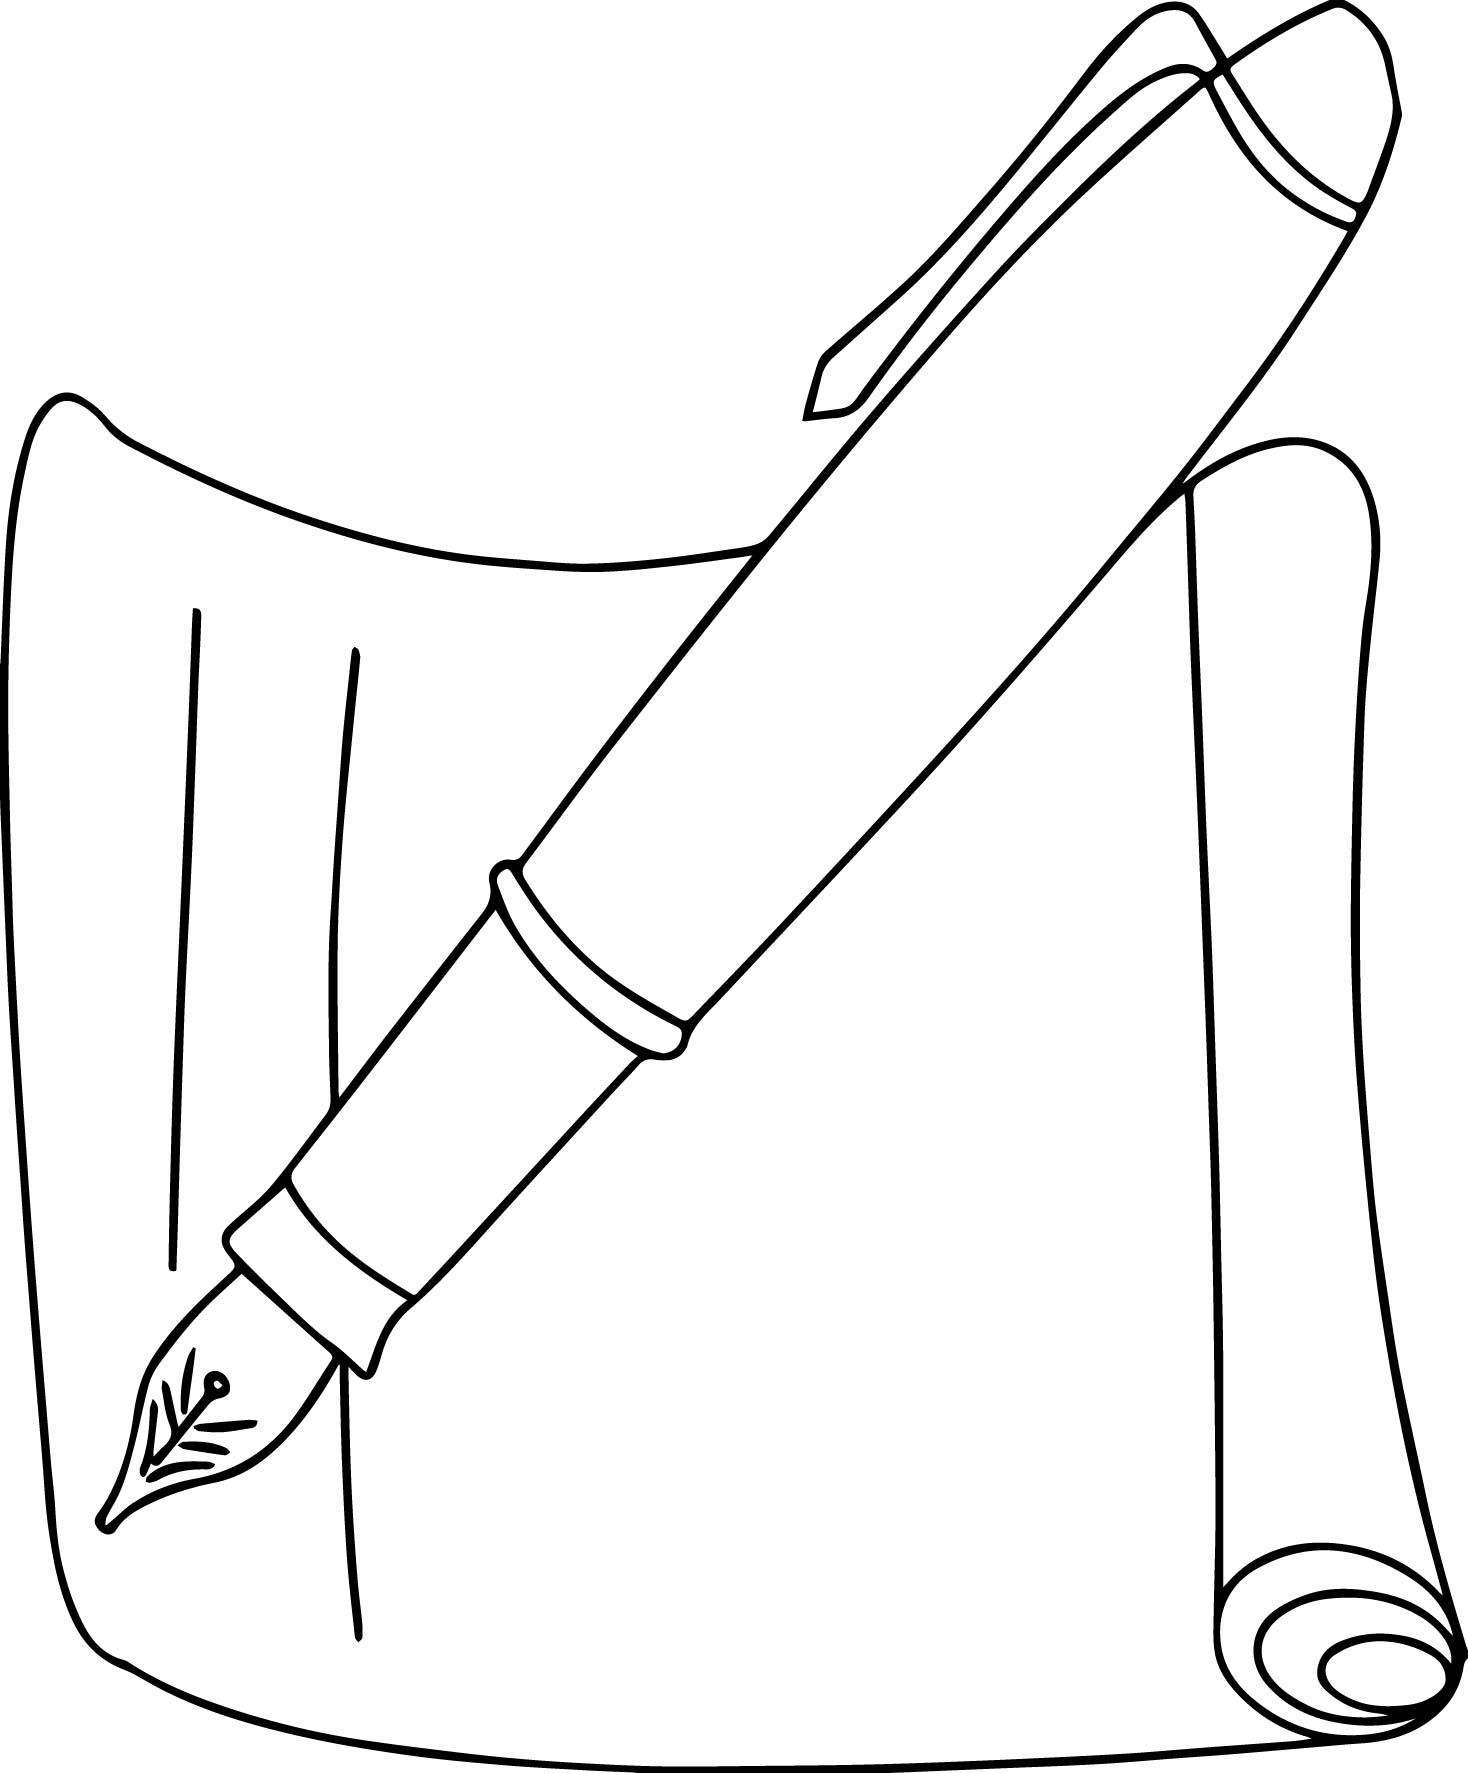 a simple lineart of pencil and a piece of paper coloring page